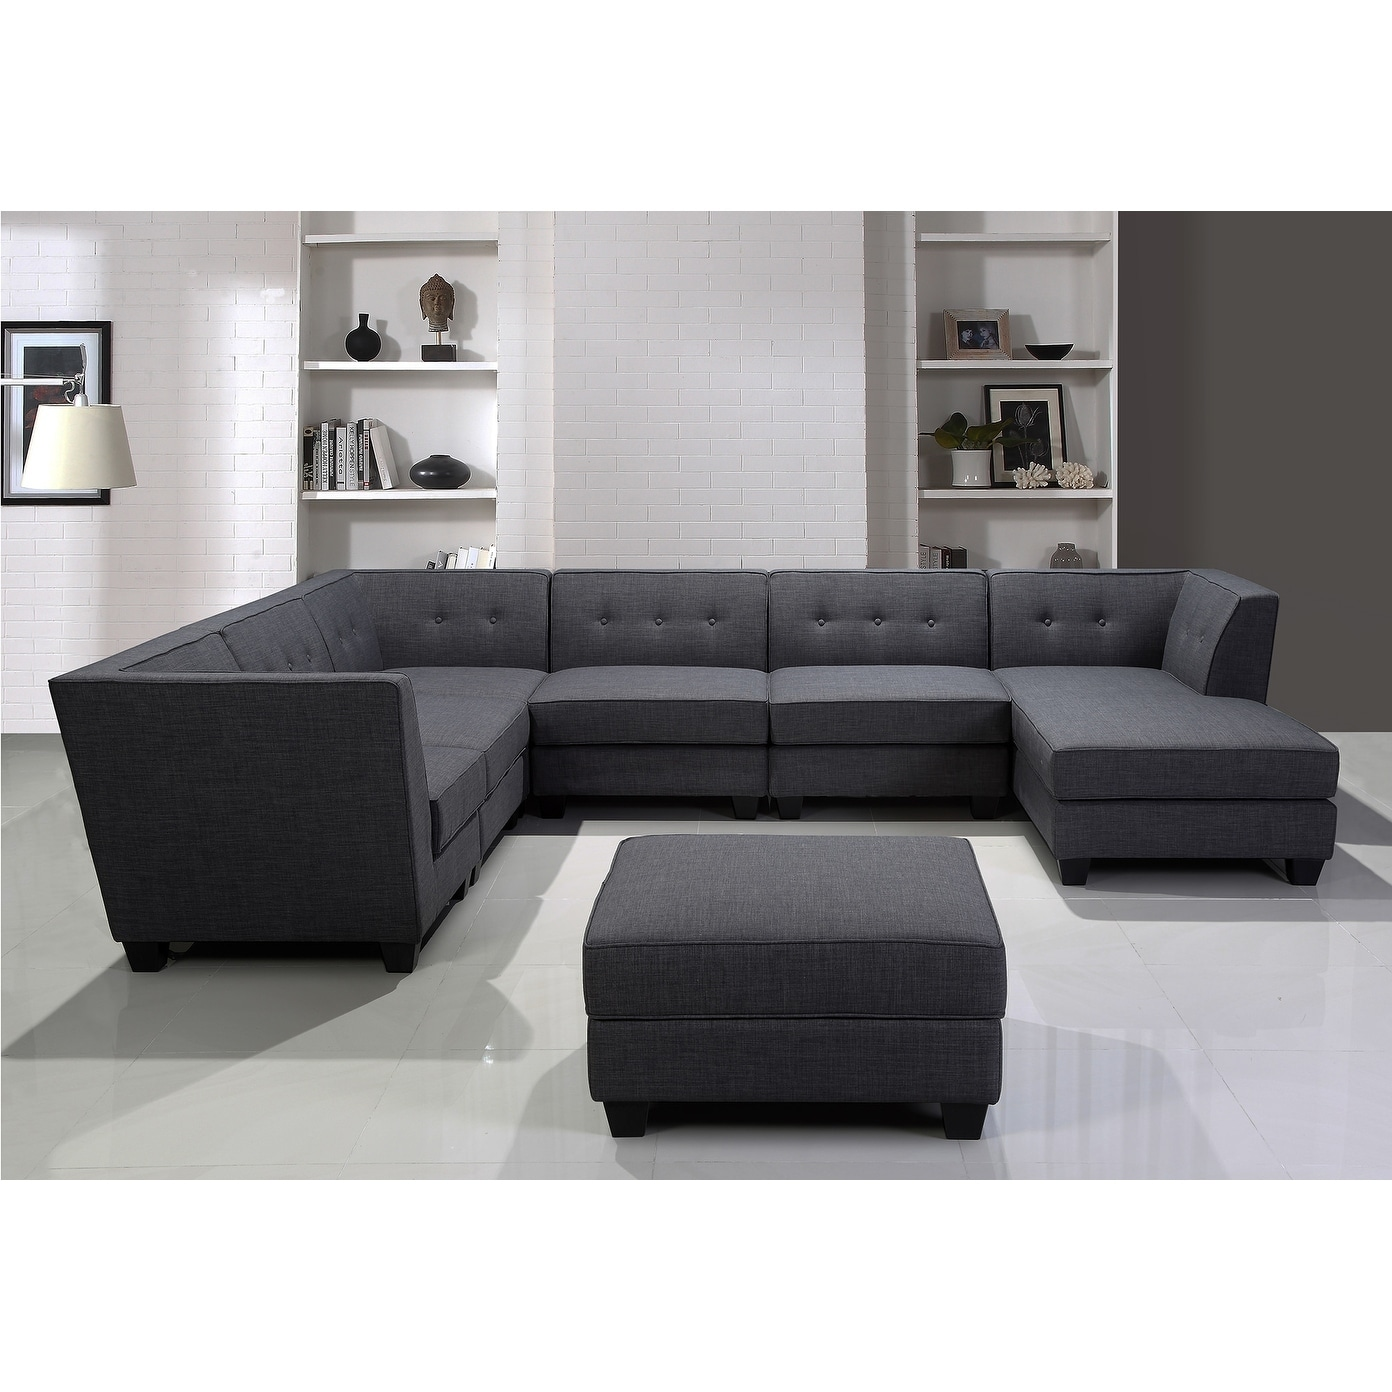 Best Master Furniture Vendome Modular Gray Fabric 7-Piece Sectional